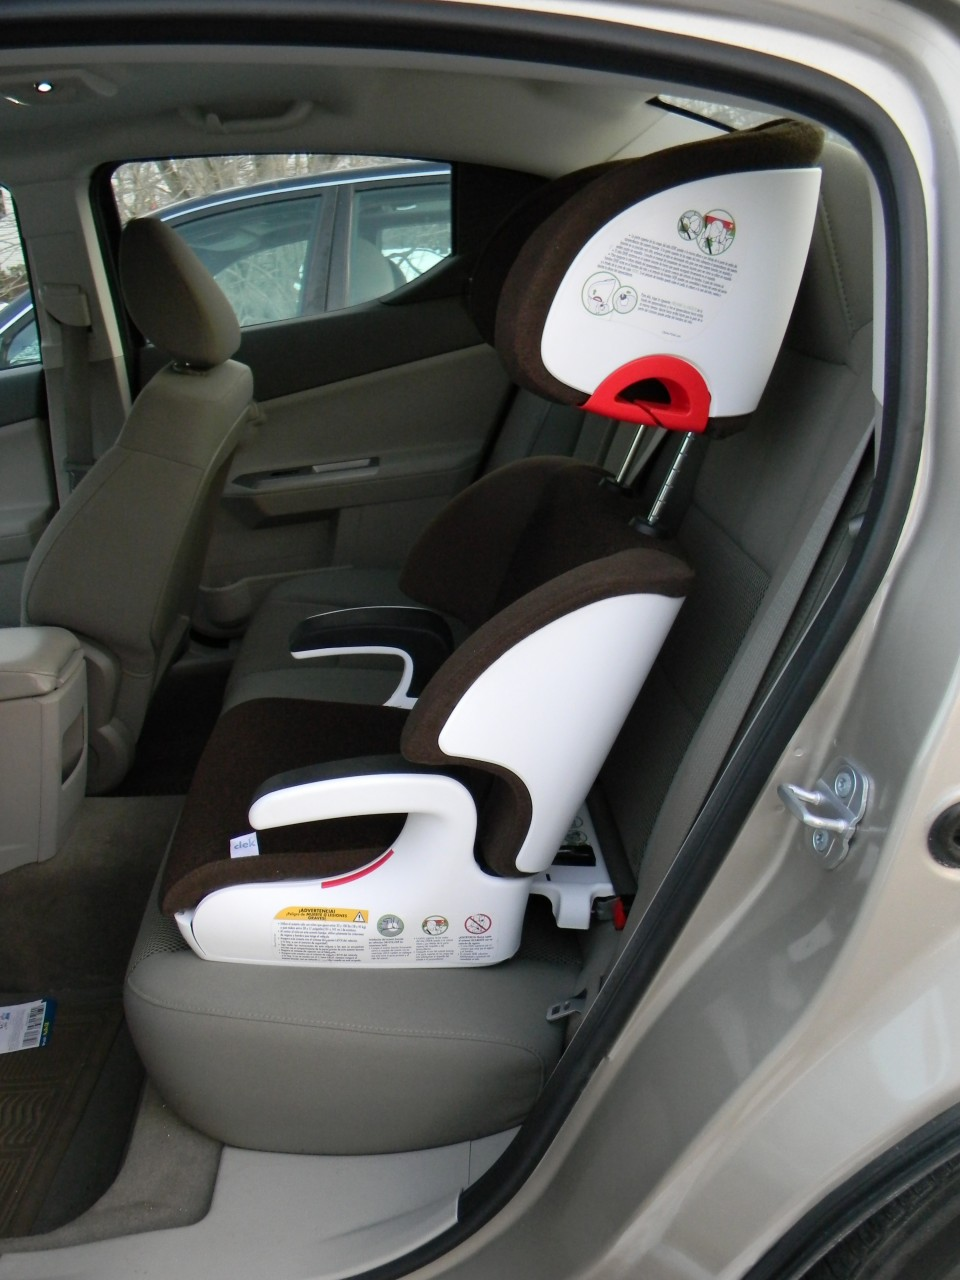 NOT ... & CarseatBlog: The Most Trusted Source for Car Seat Reviews Ratings ... islam-shia.org